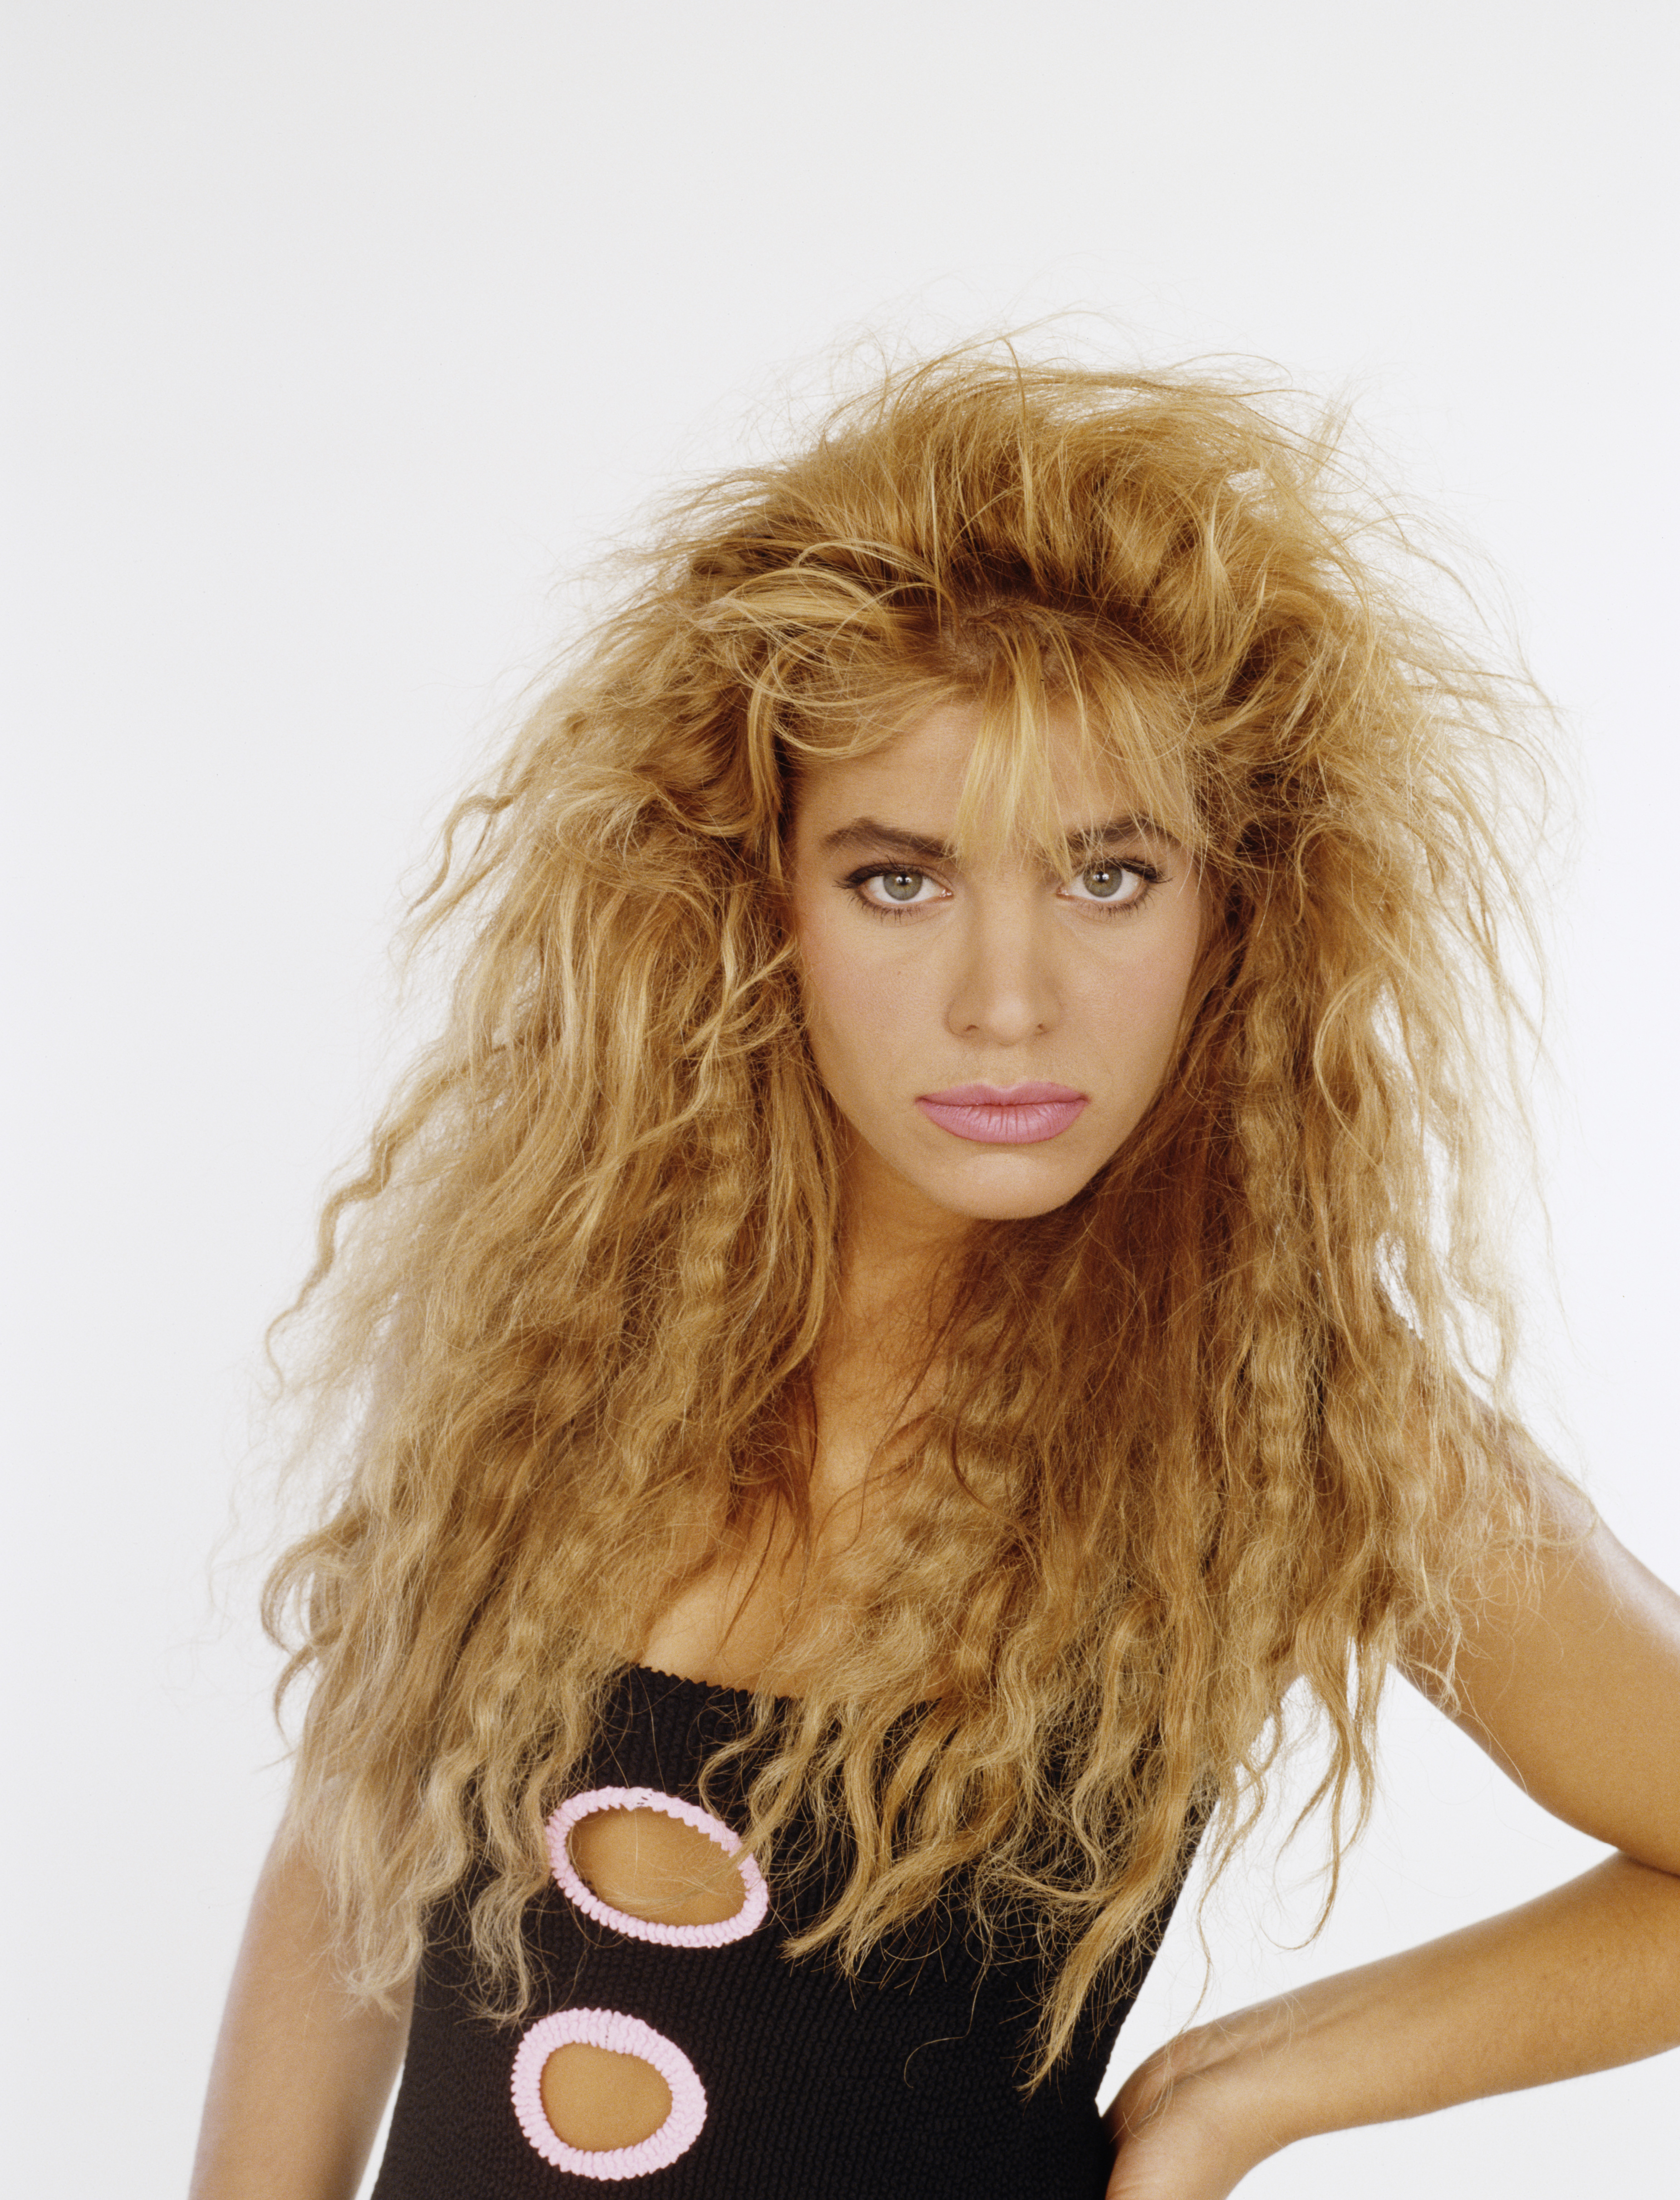 Bad s Beauty Trends Embarrassing Eighties Hairstyles and